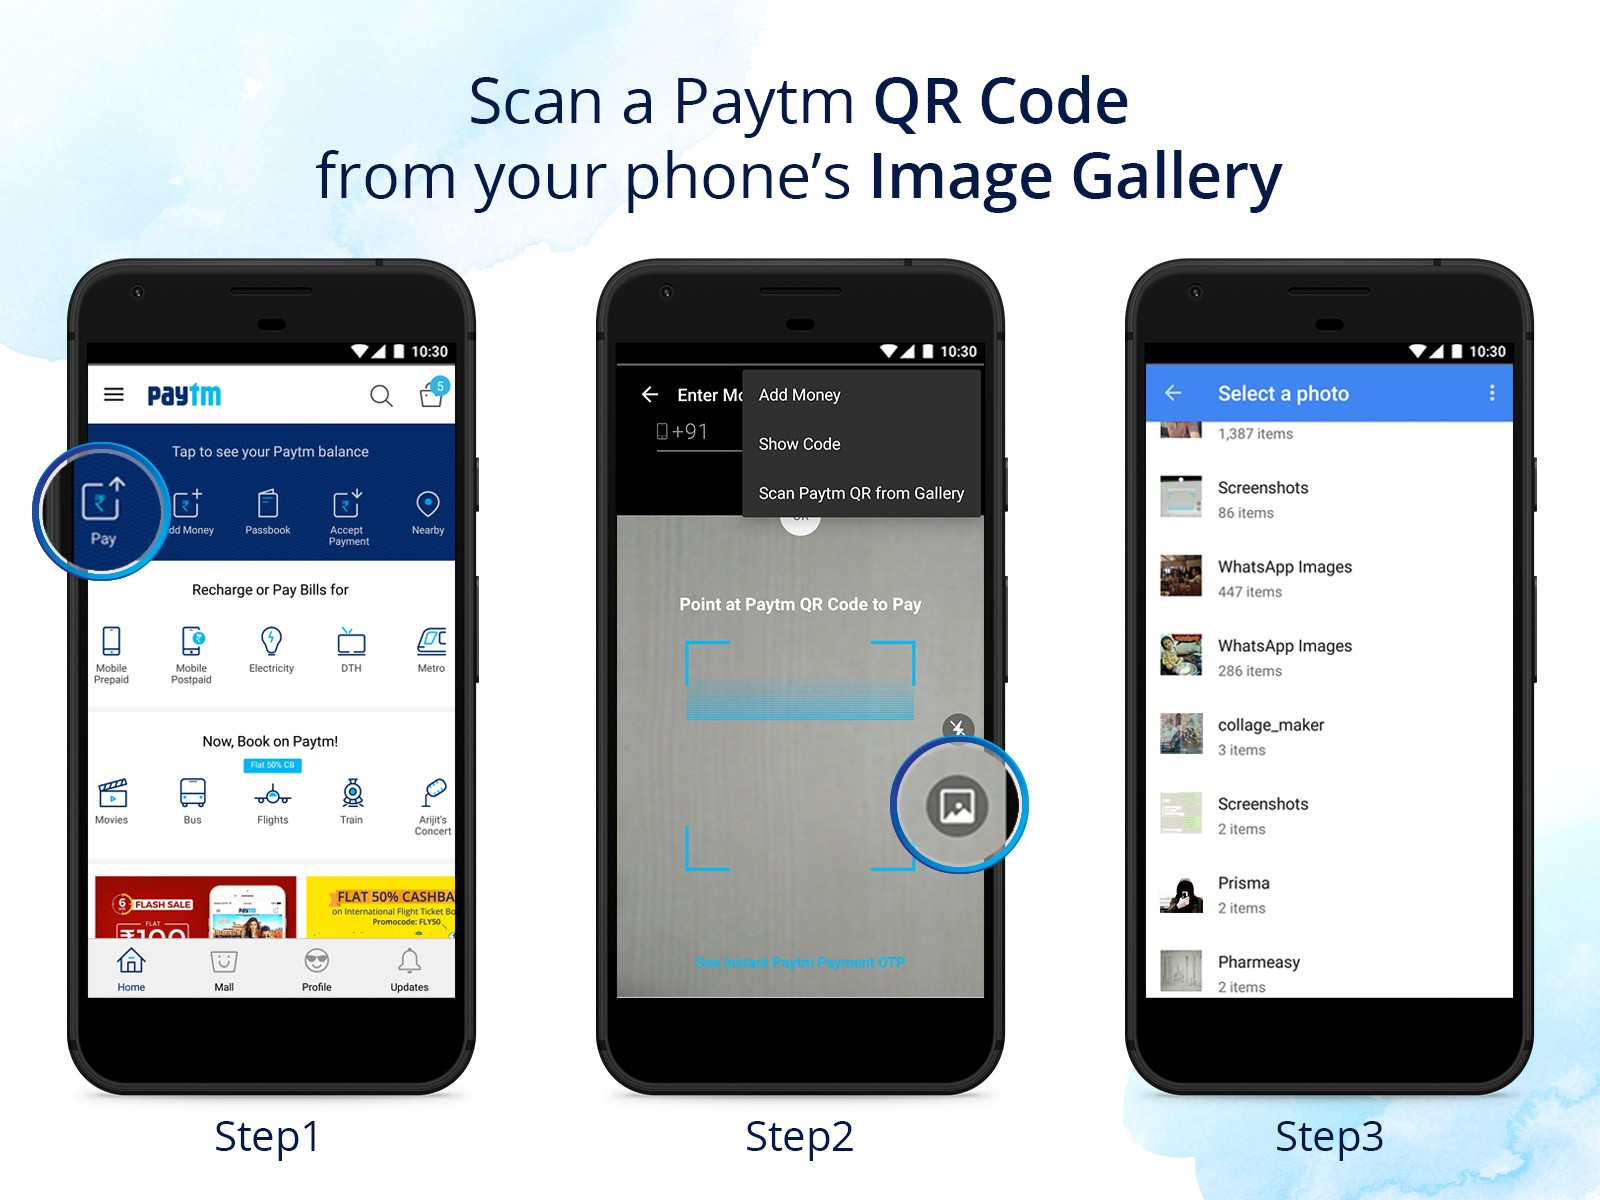 8 Things you didn't know you could do on Paytm (No 7 will